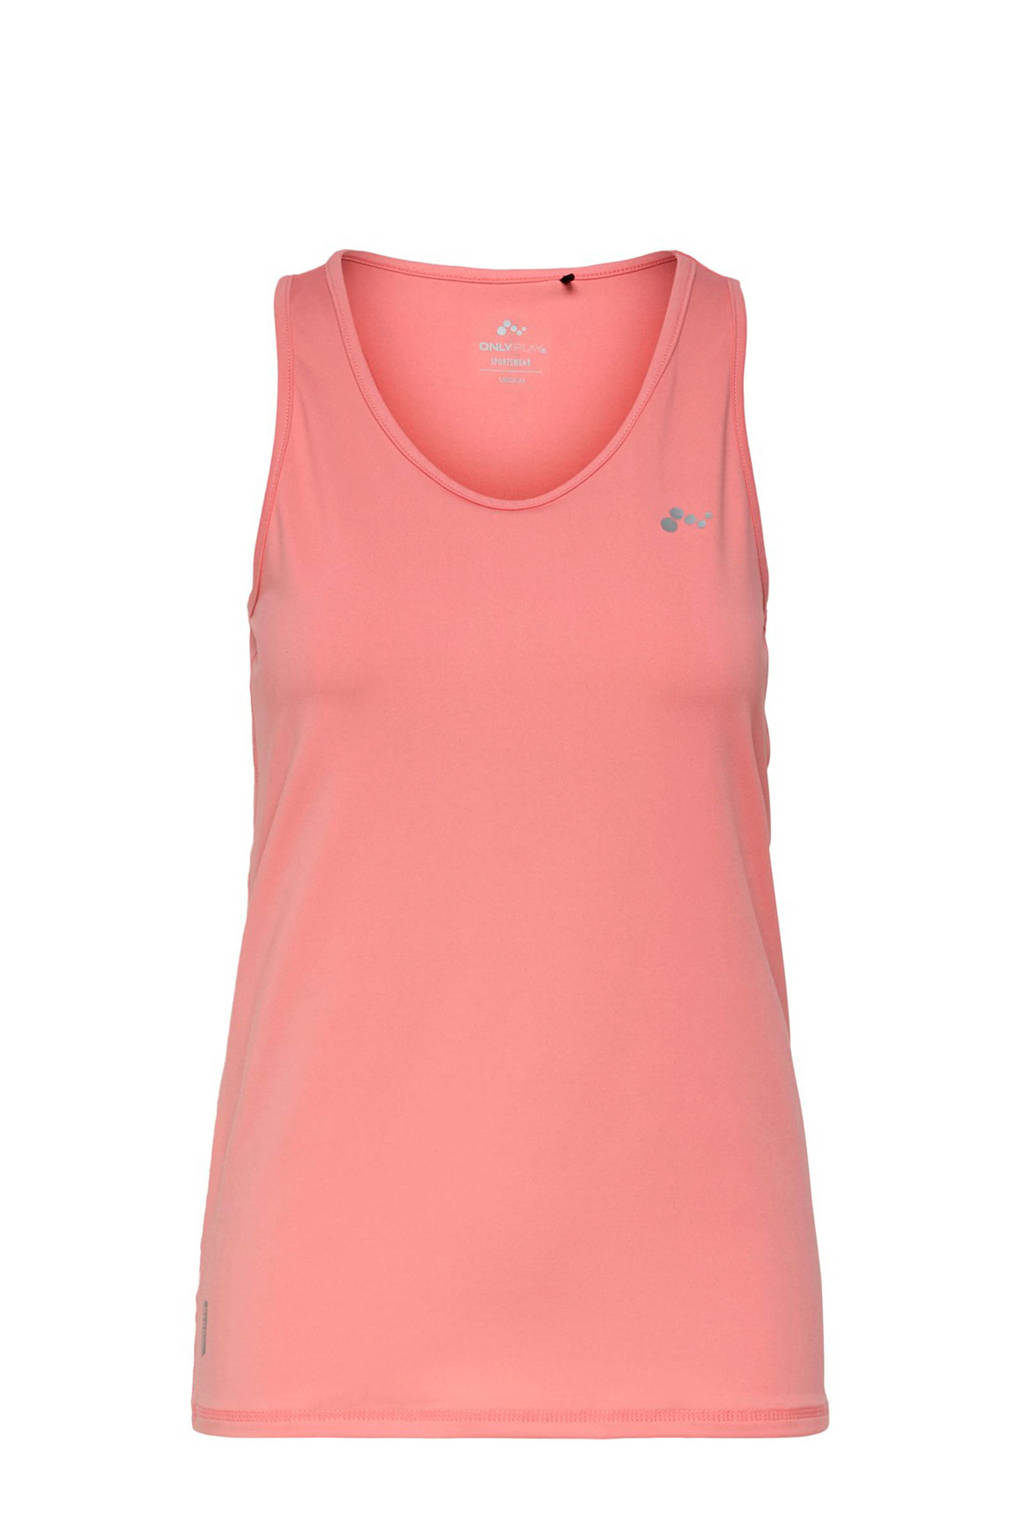 ONLY PLAY sporttop roze, Roze